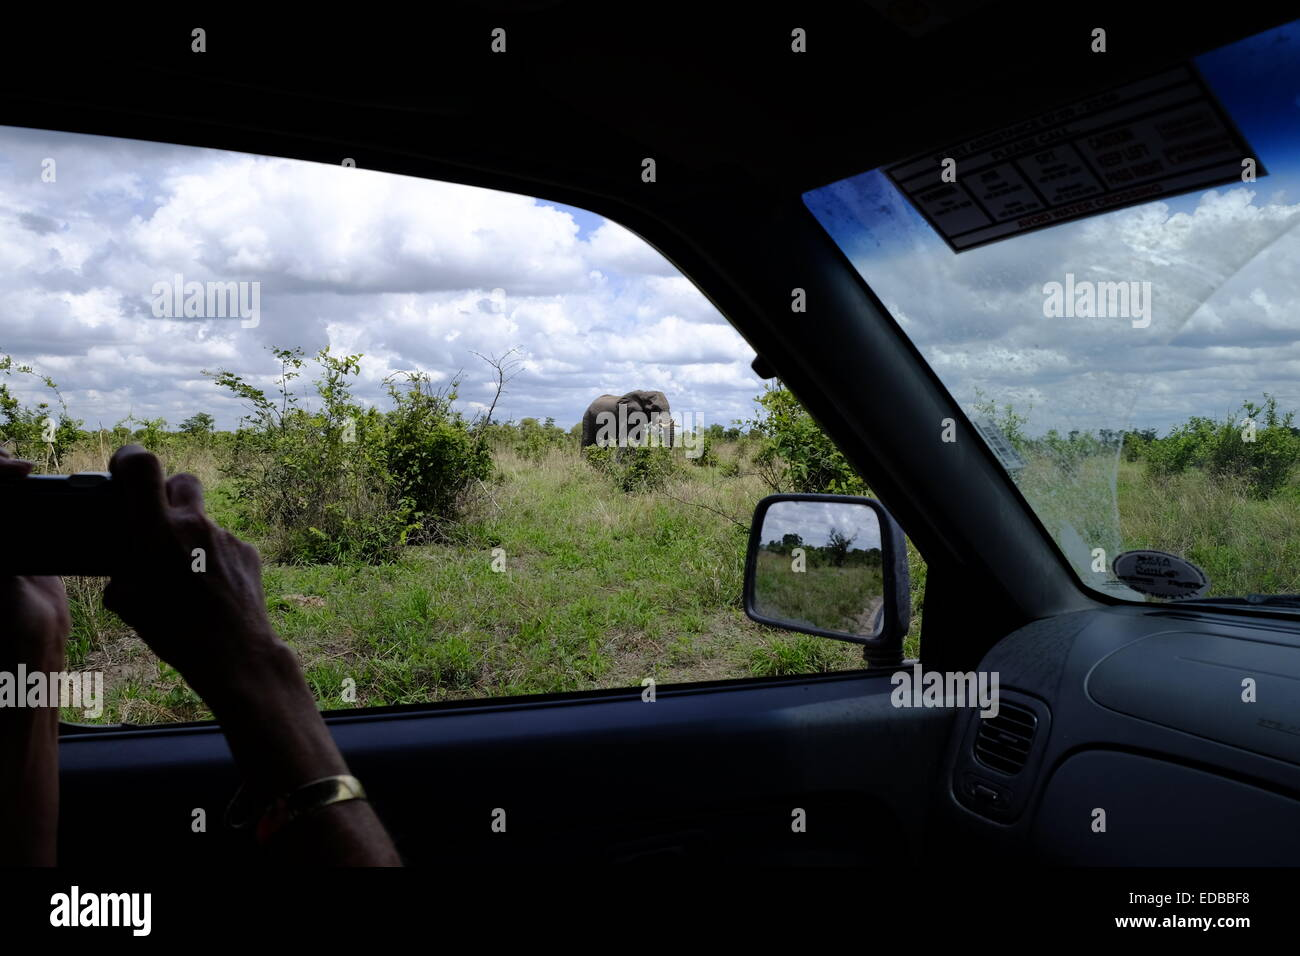 A tourist on safari photographs an elephant from the window of her car Botswana. - Stock Image